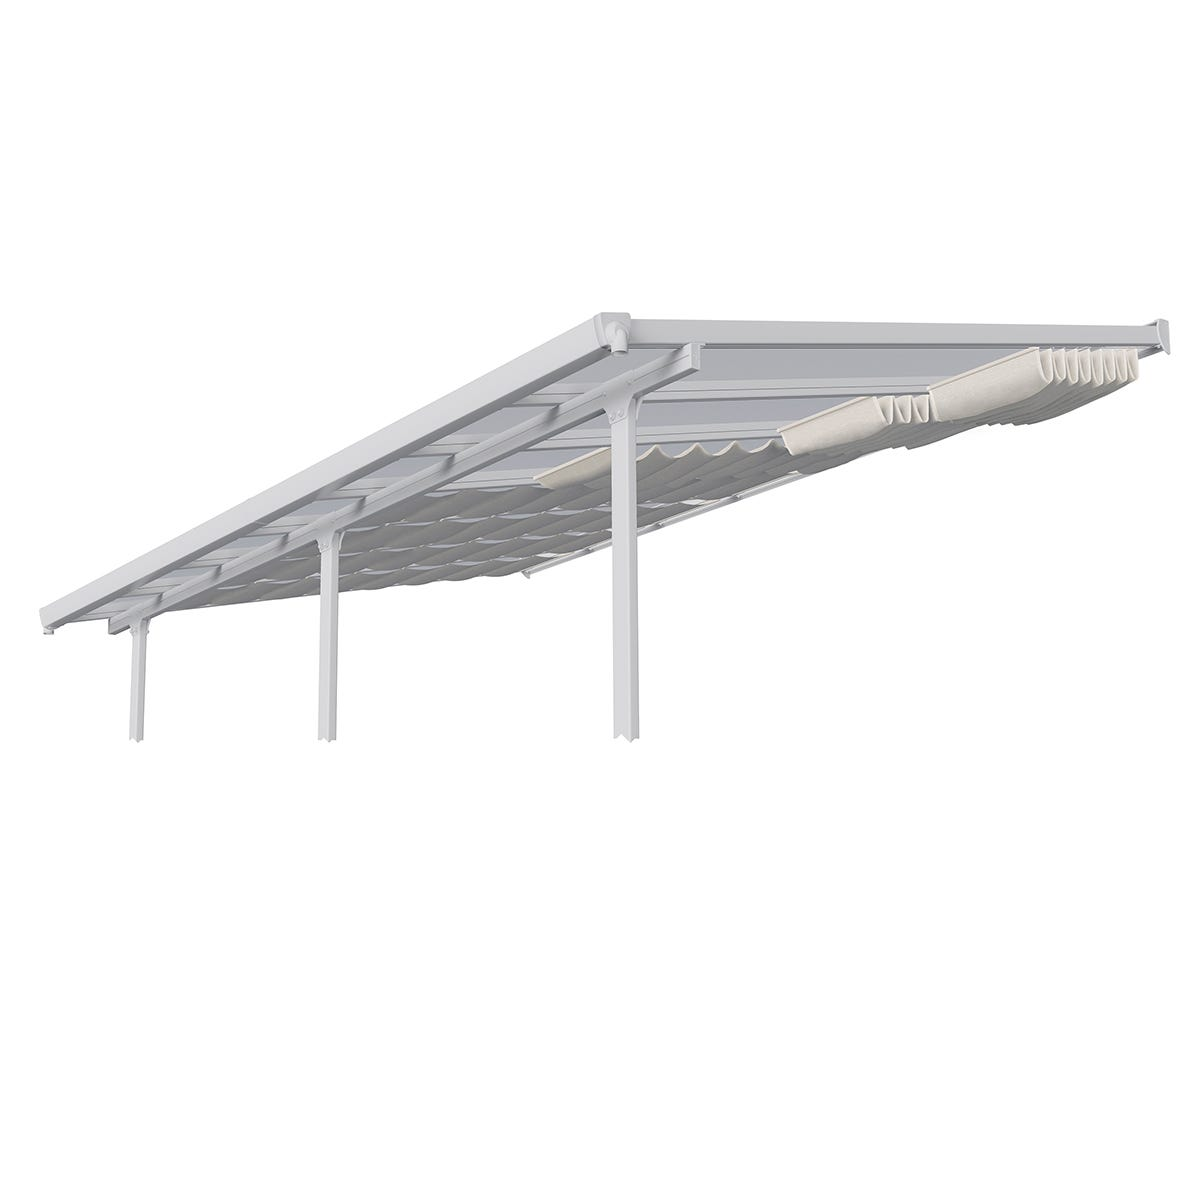 Palram - Canopia Patio Cover Roof Blinds 3m x 8.51m - White